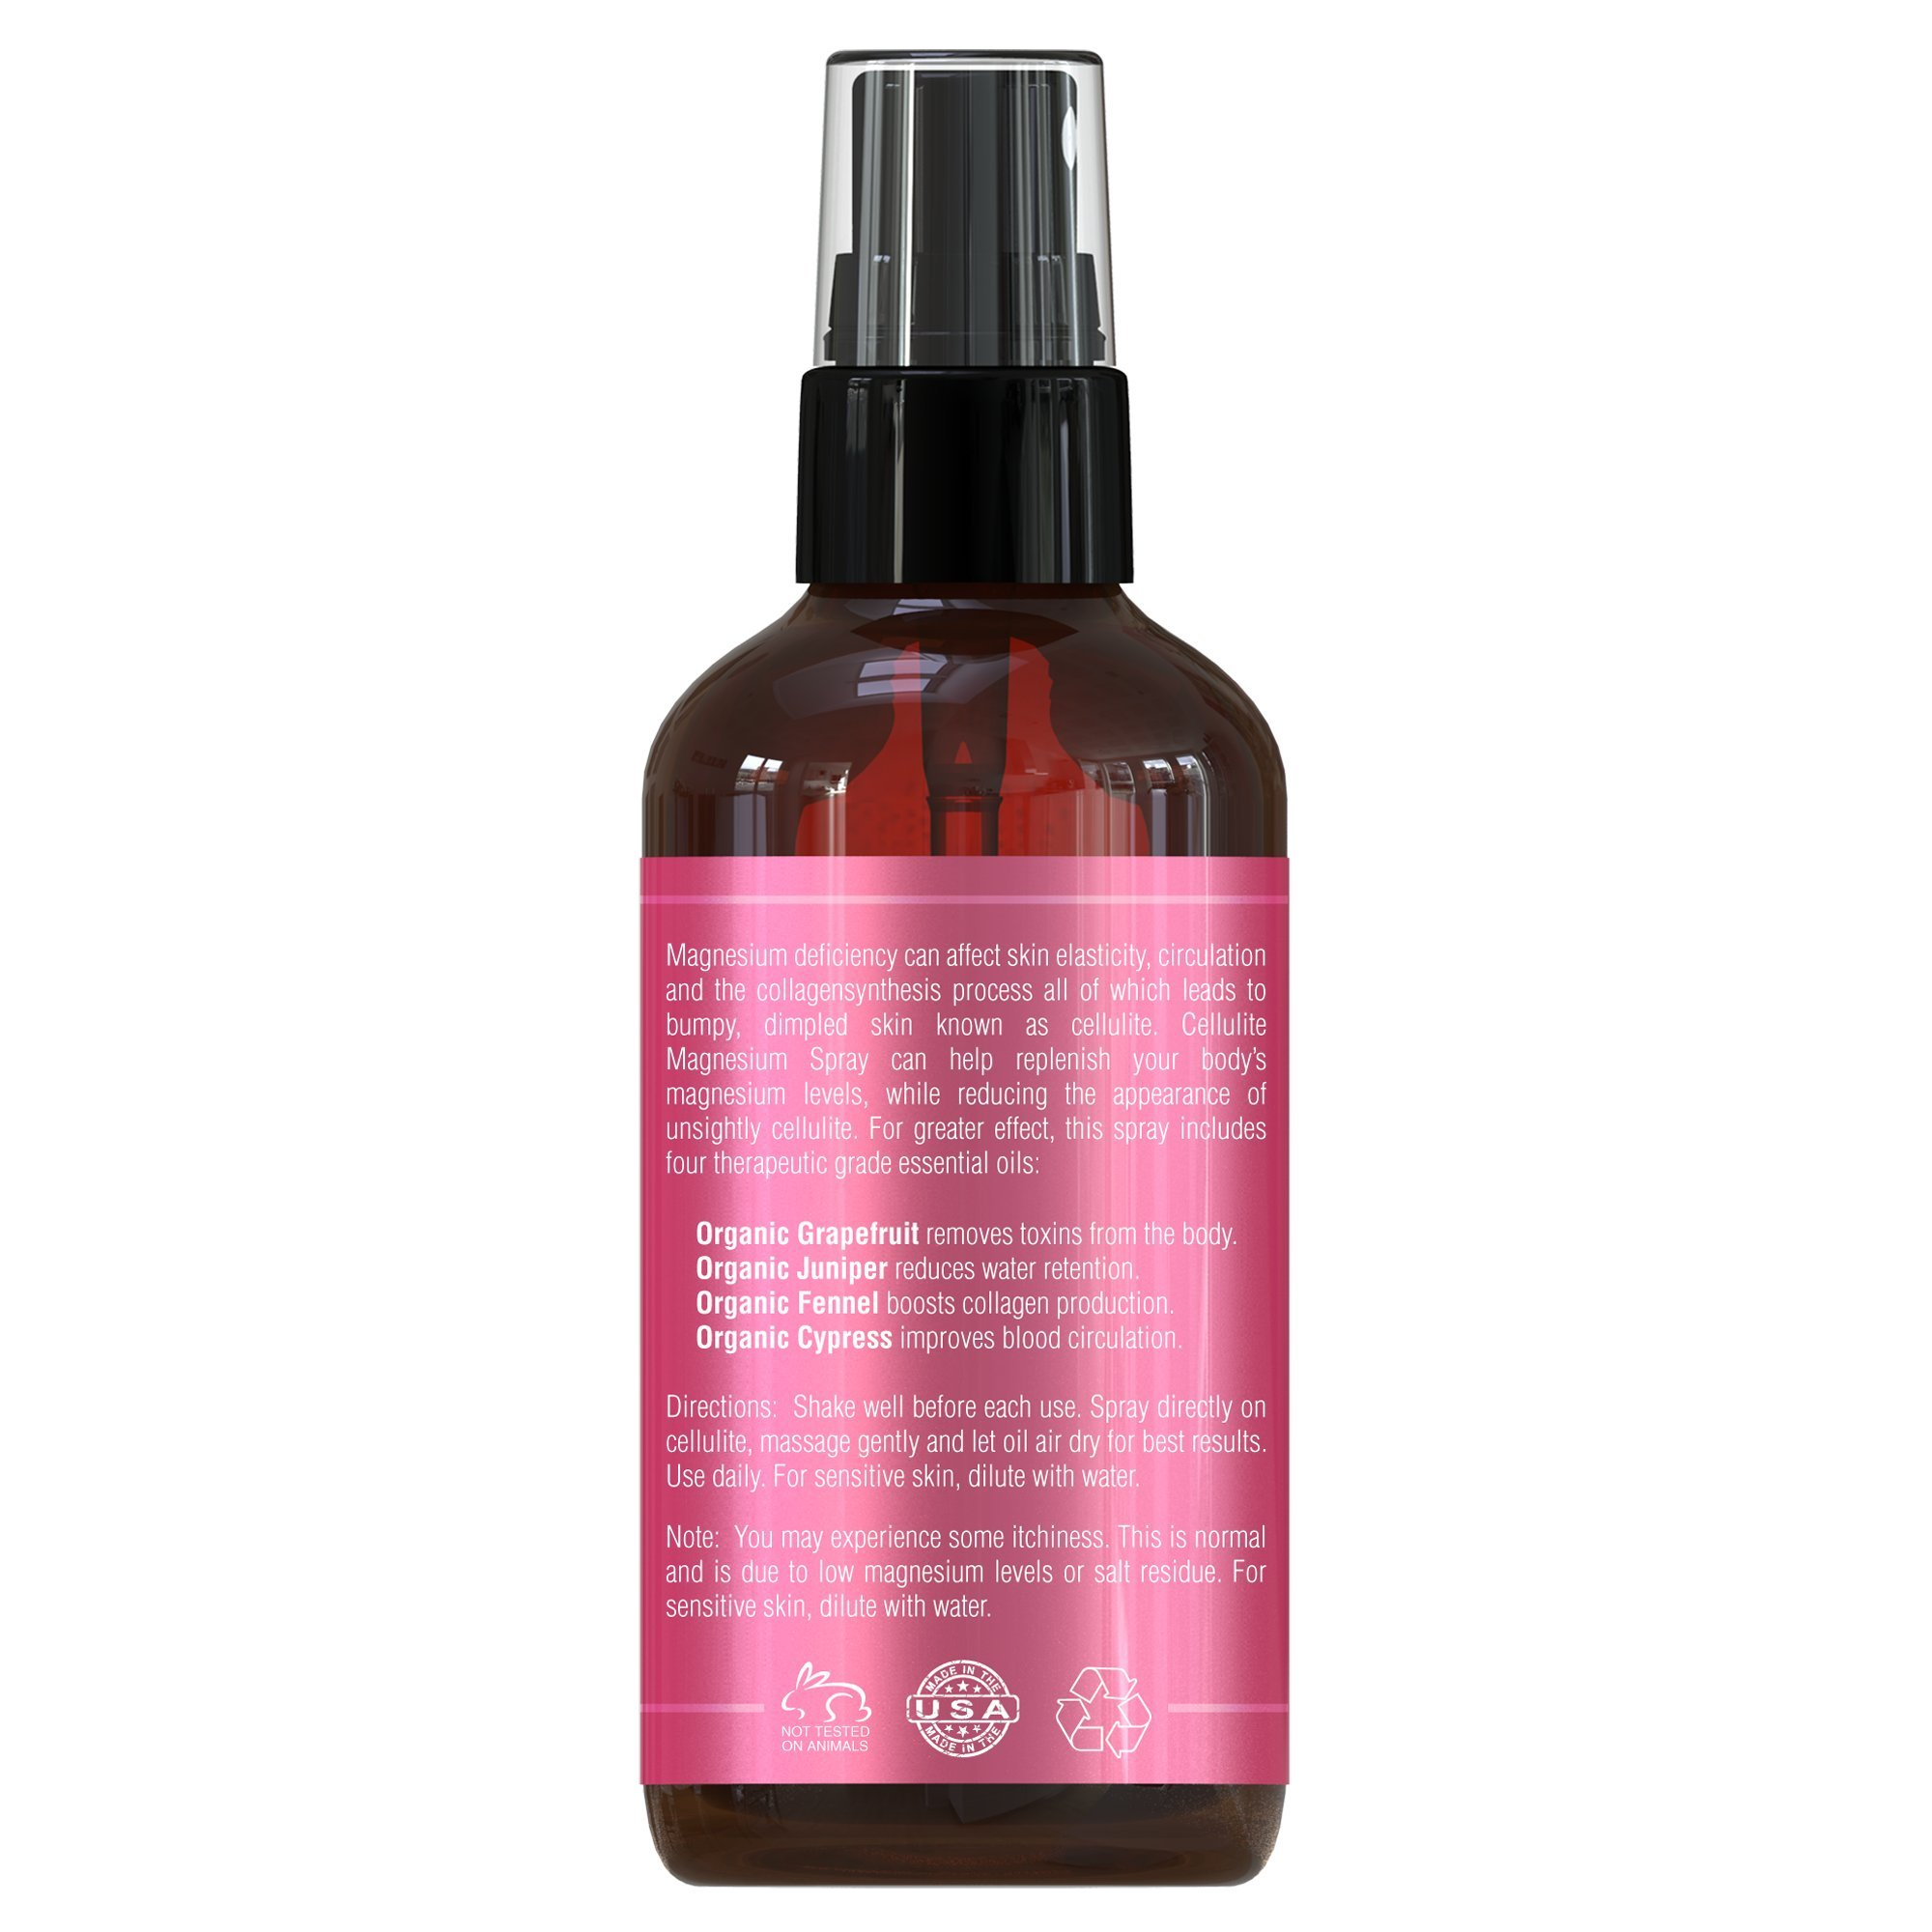 Cellulite Magnesium Spray Treatment | Made In USA - 100% Natural Essential Oils Blend | Organic Grapefruit, Juniper, Cypress & Fennel Oils | Eliminate & Remove Cellulite From Butt & Thighs by Seven Minerals (Image #4)